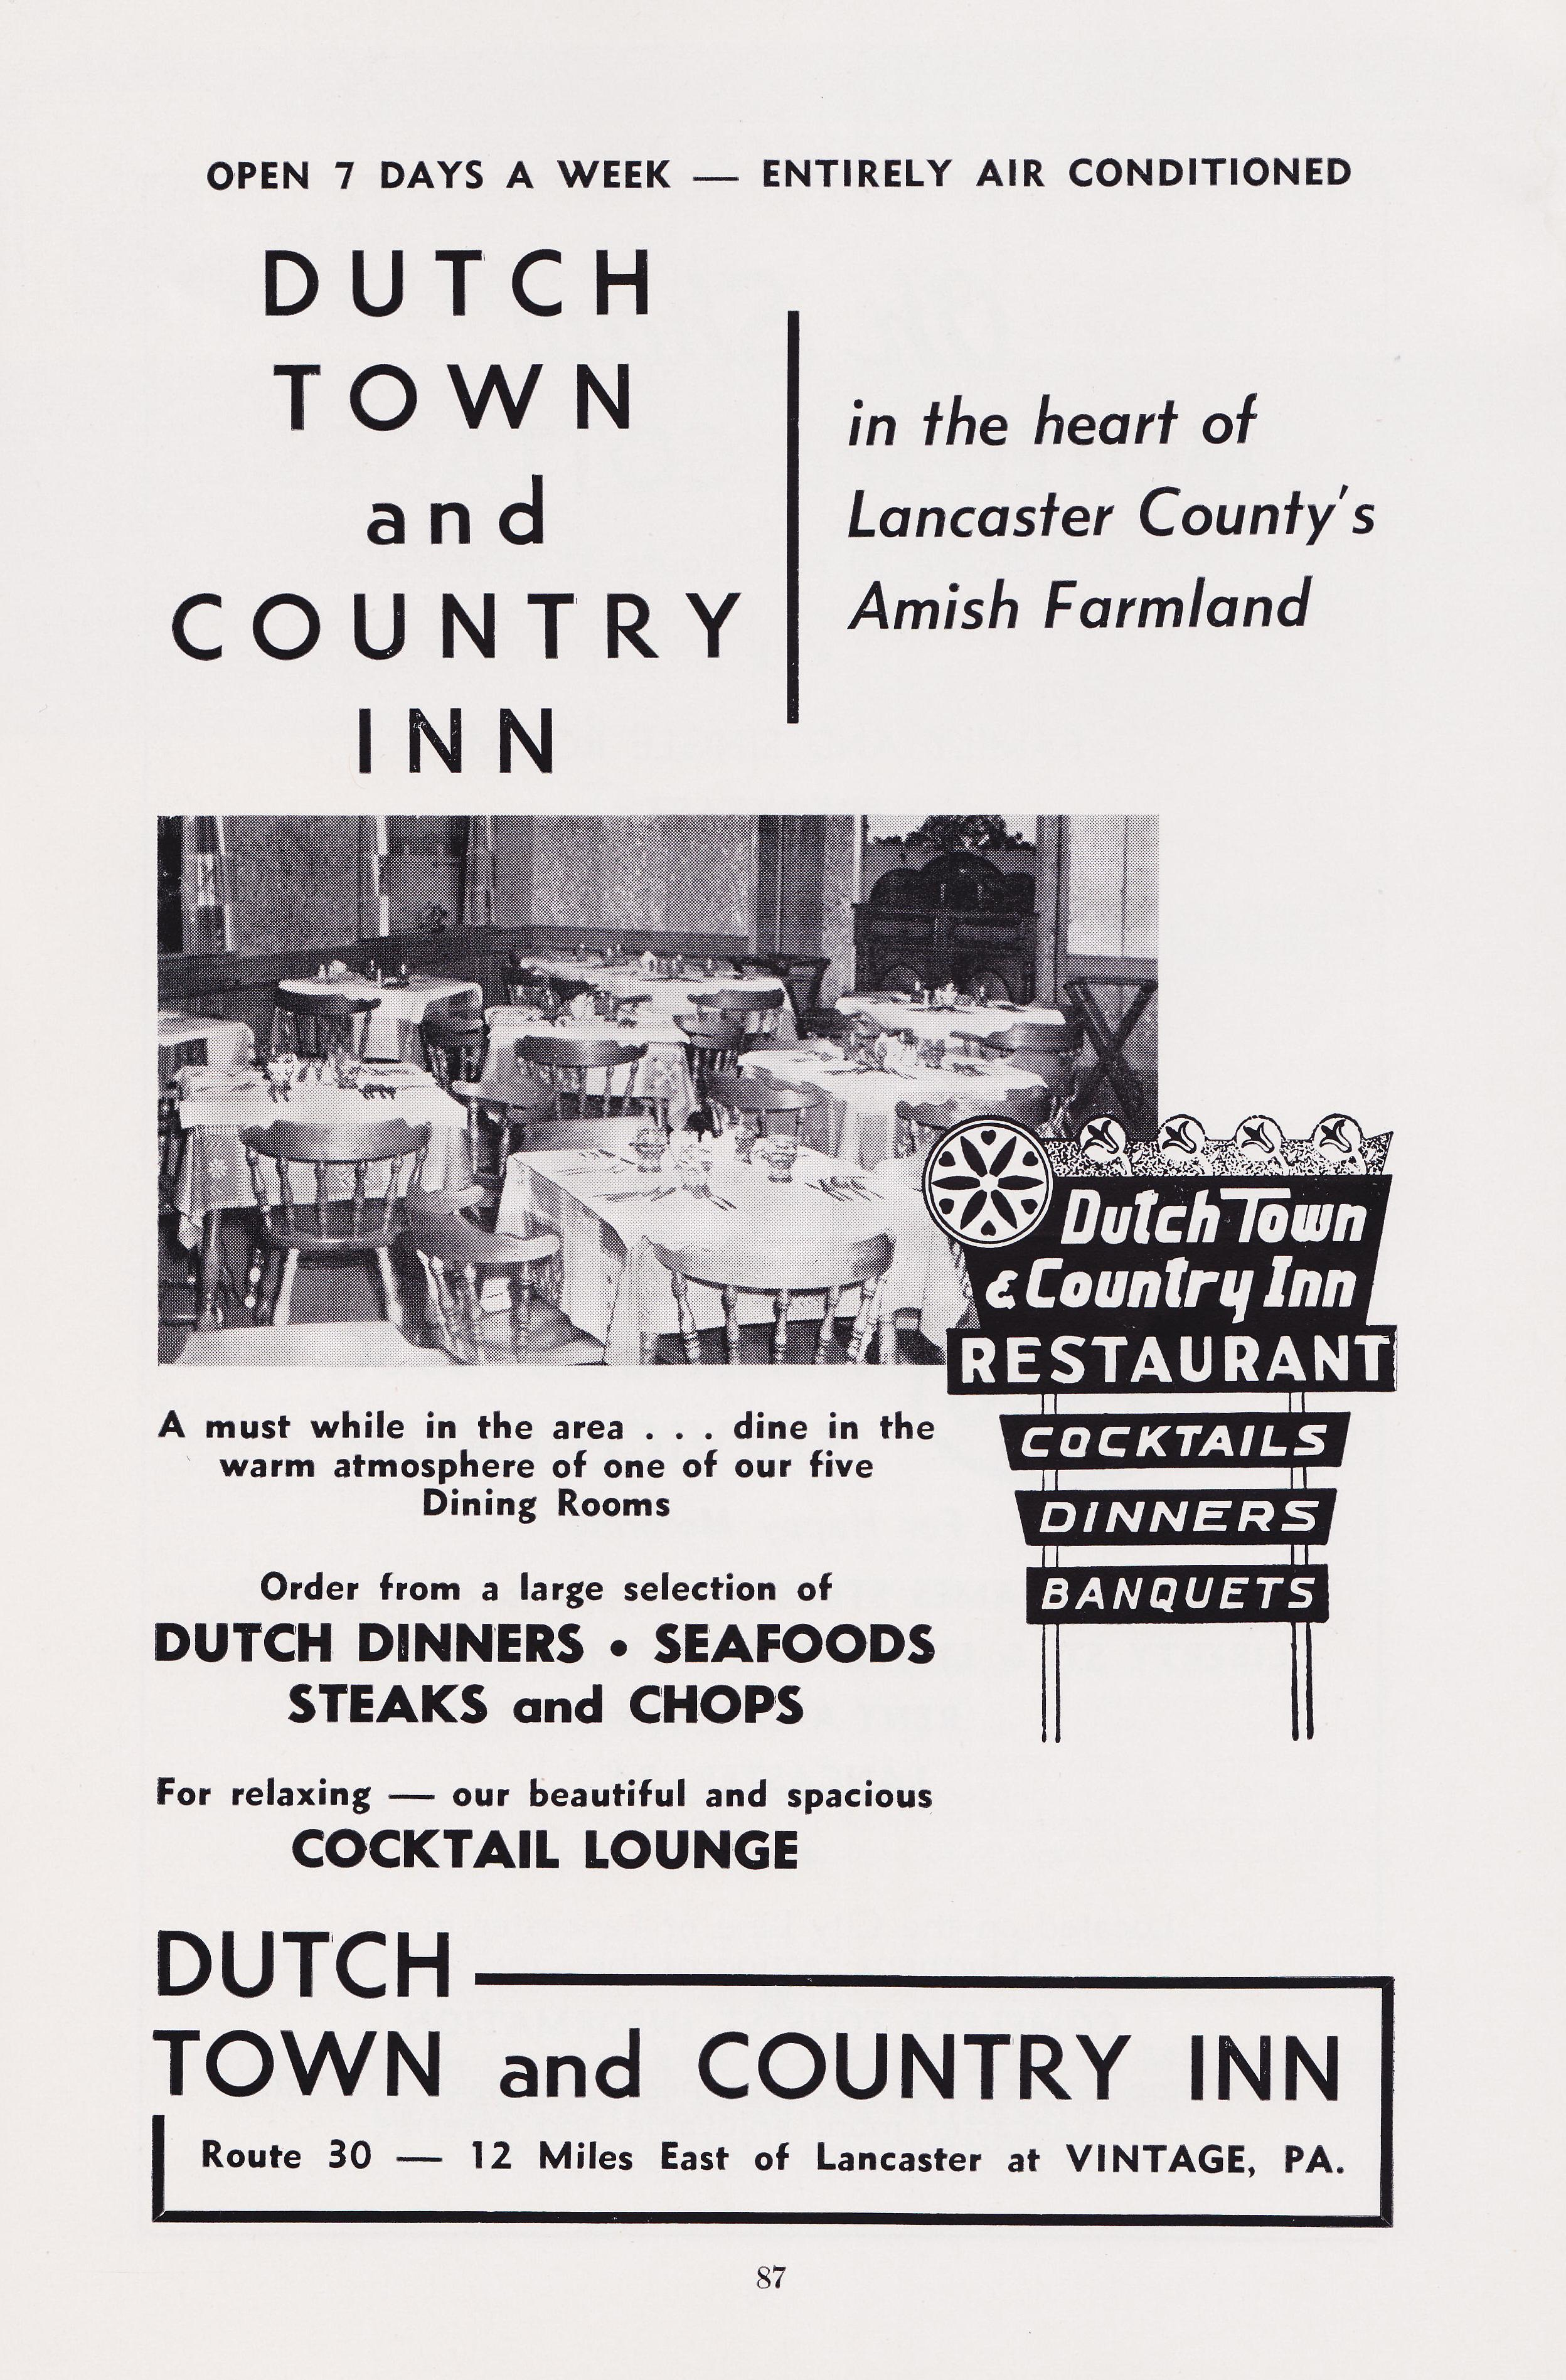 Dutch Town and Country Inn - Vintage, Pennsylvania U.S.A. - 1959